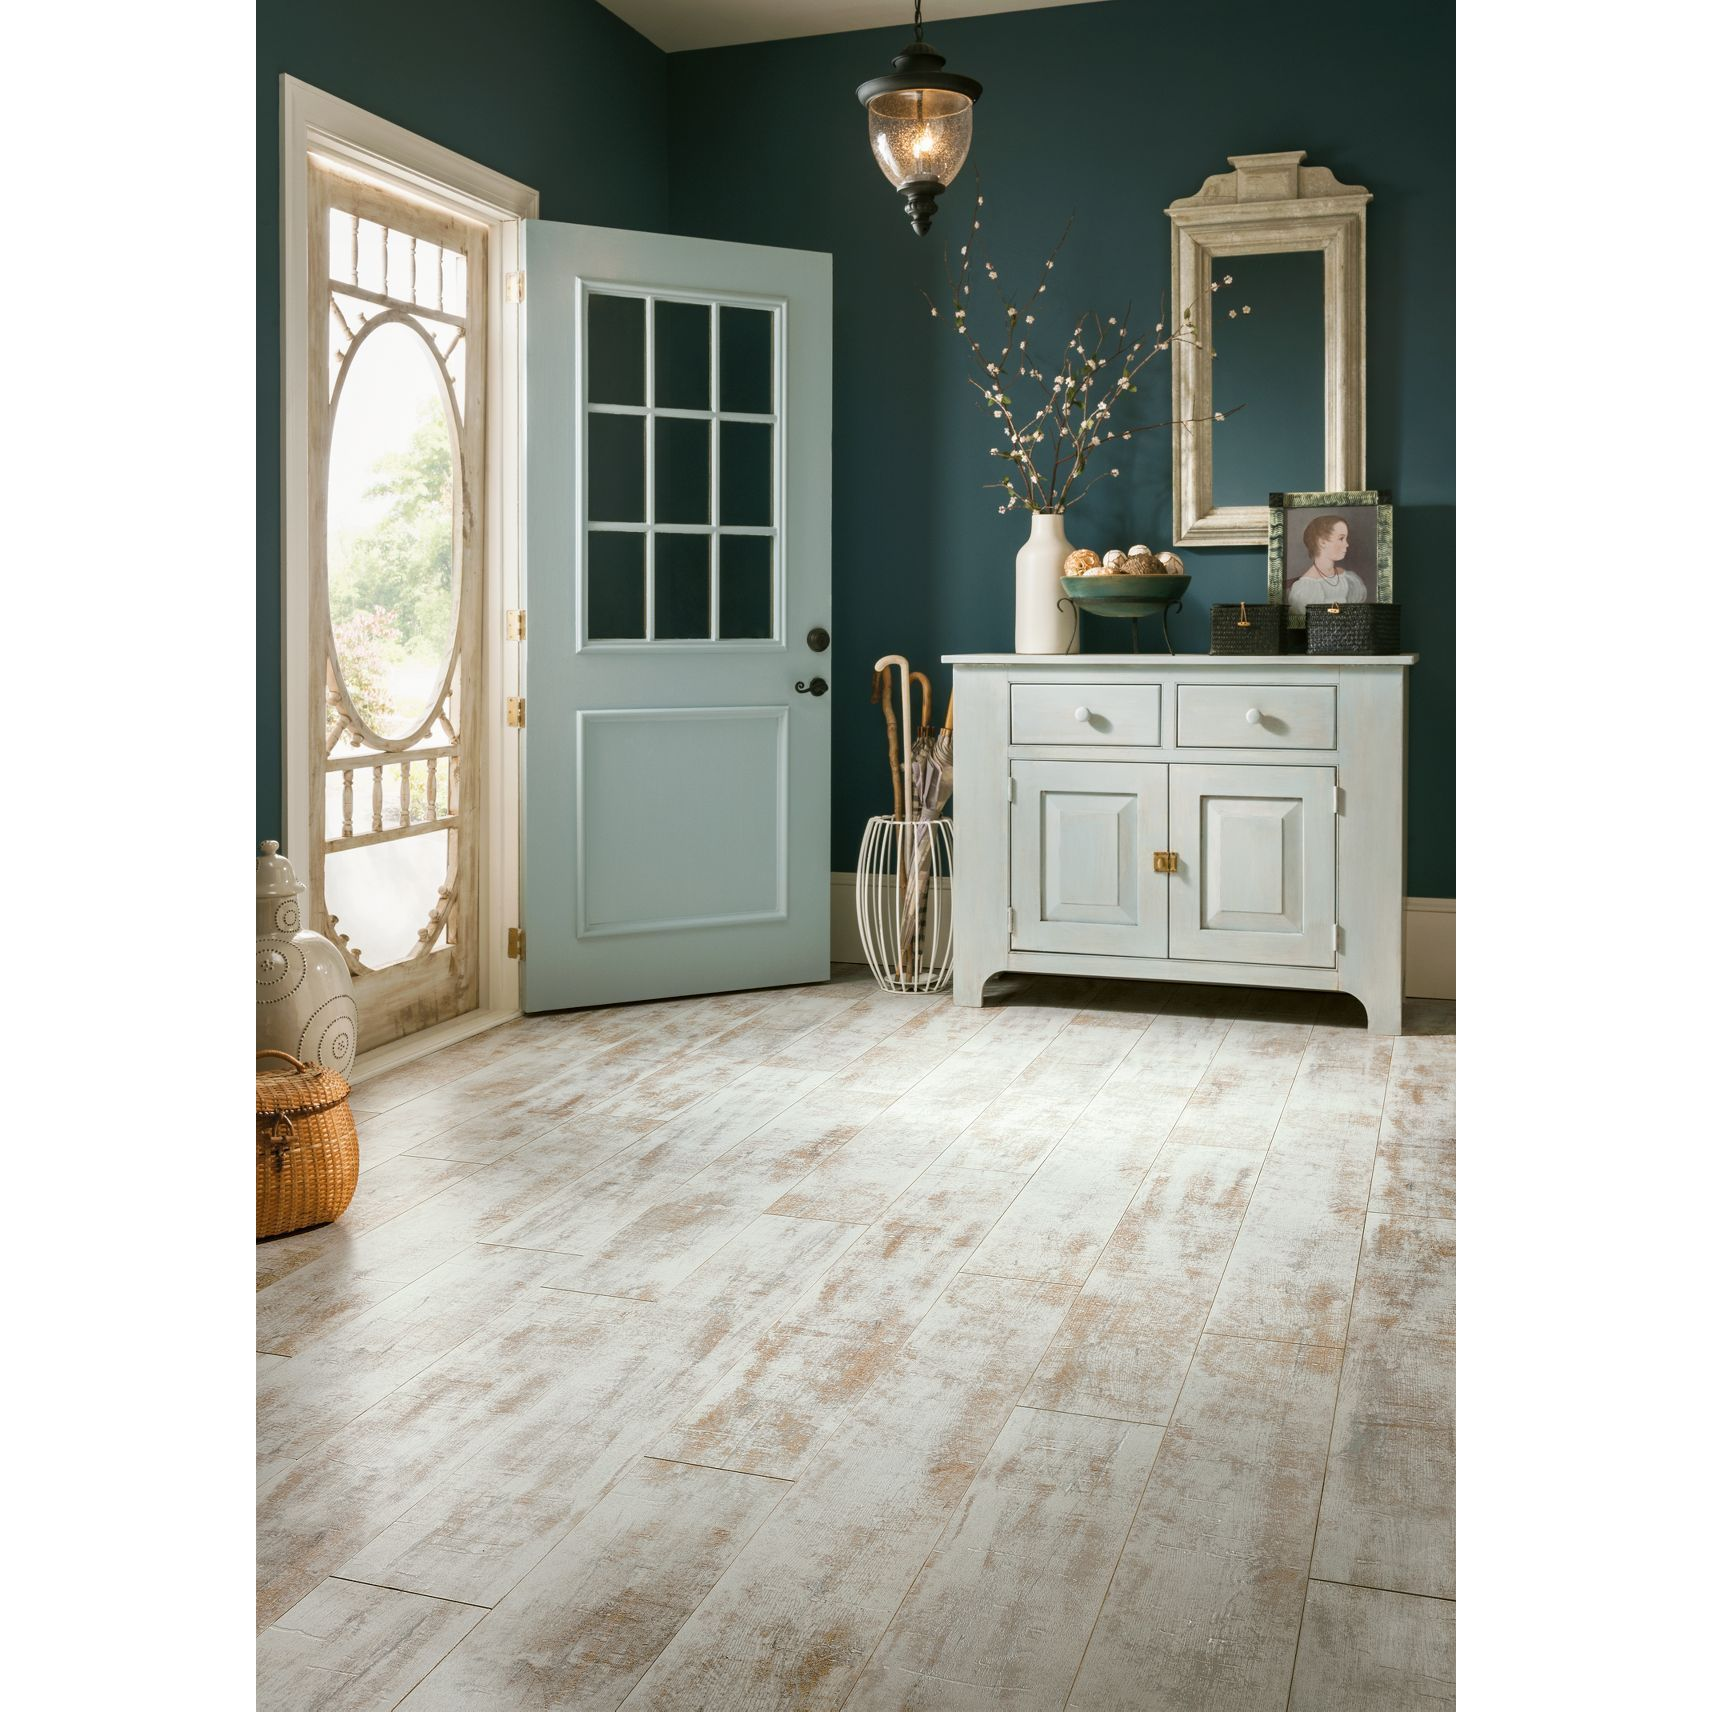 Armstrong Architectural Remnants Laminate 15.14 Square Fe...